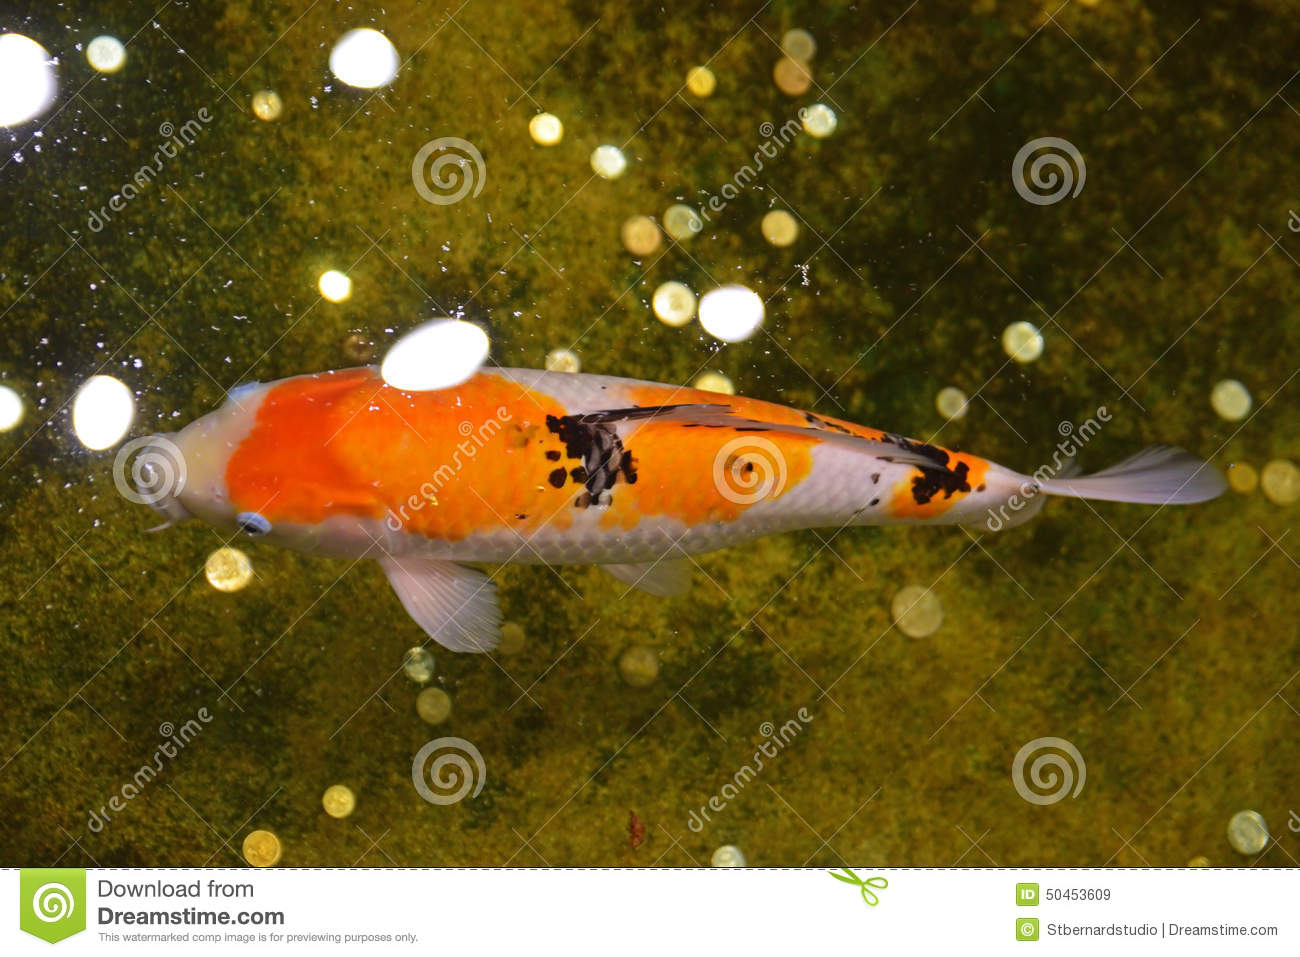 Japanese koi fish in an indoor water pond stock photo for Japanese koi carp fish